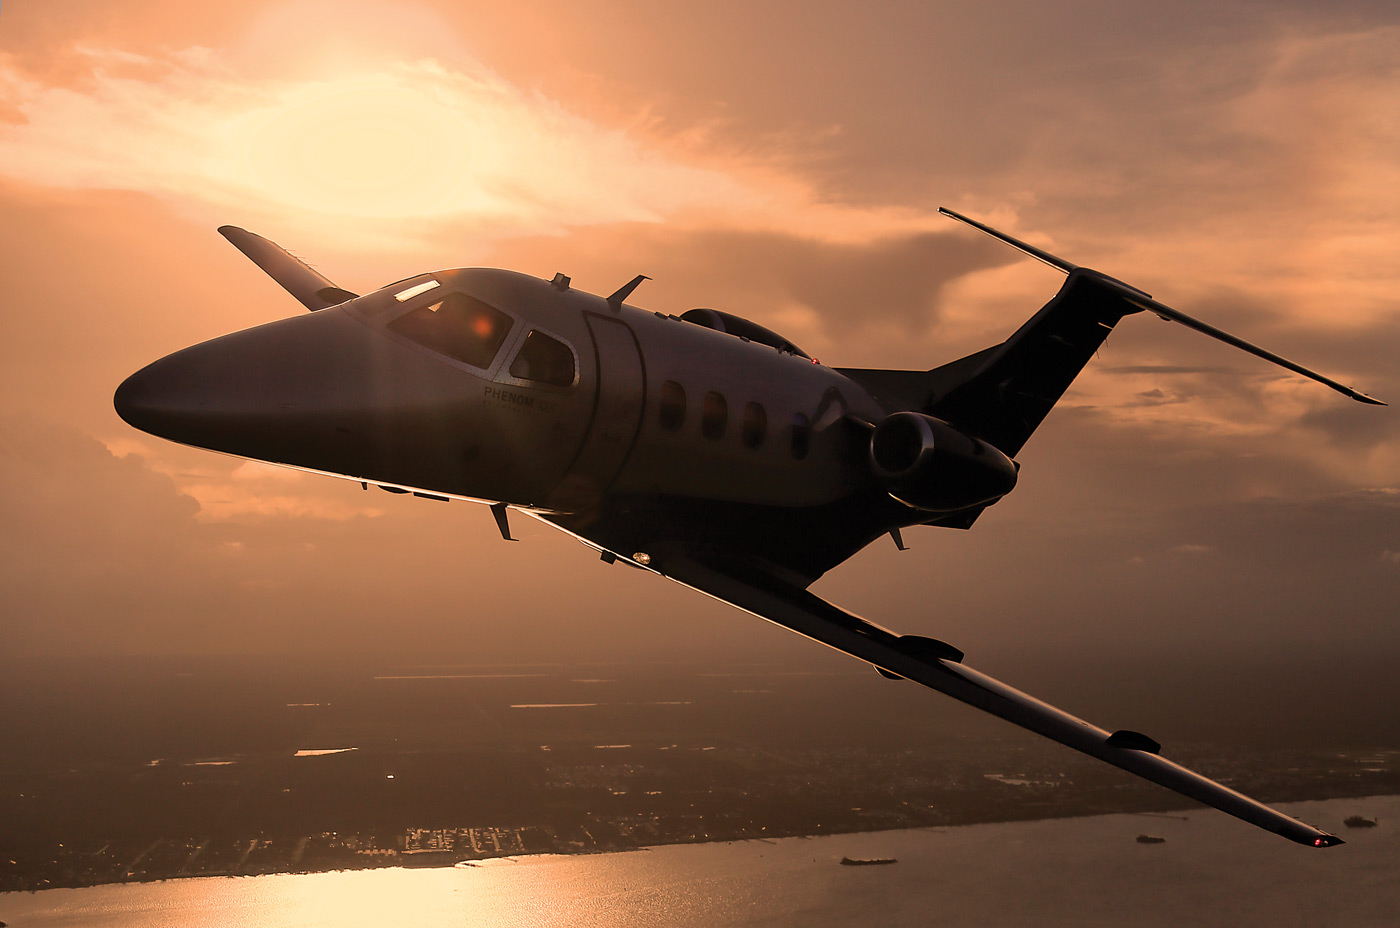 The Canadian corporate operators on our panel reported their aircraft each fly around 400 hours per year. Annual utilization is holding steady or even increasing, they say. Embraer Photo